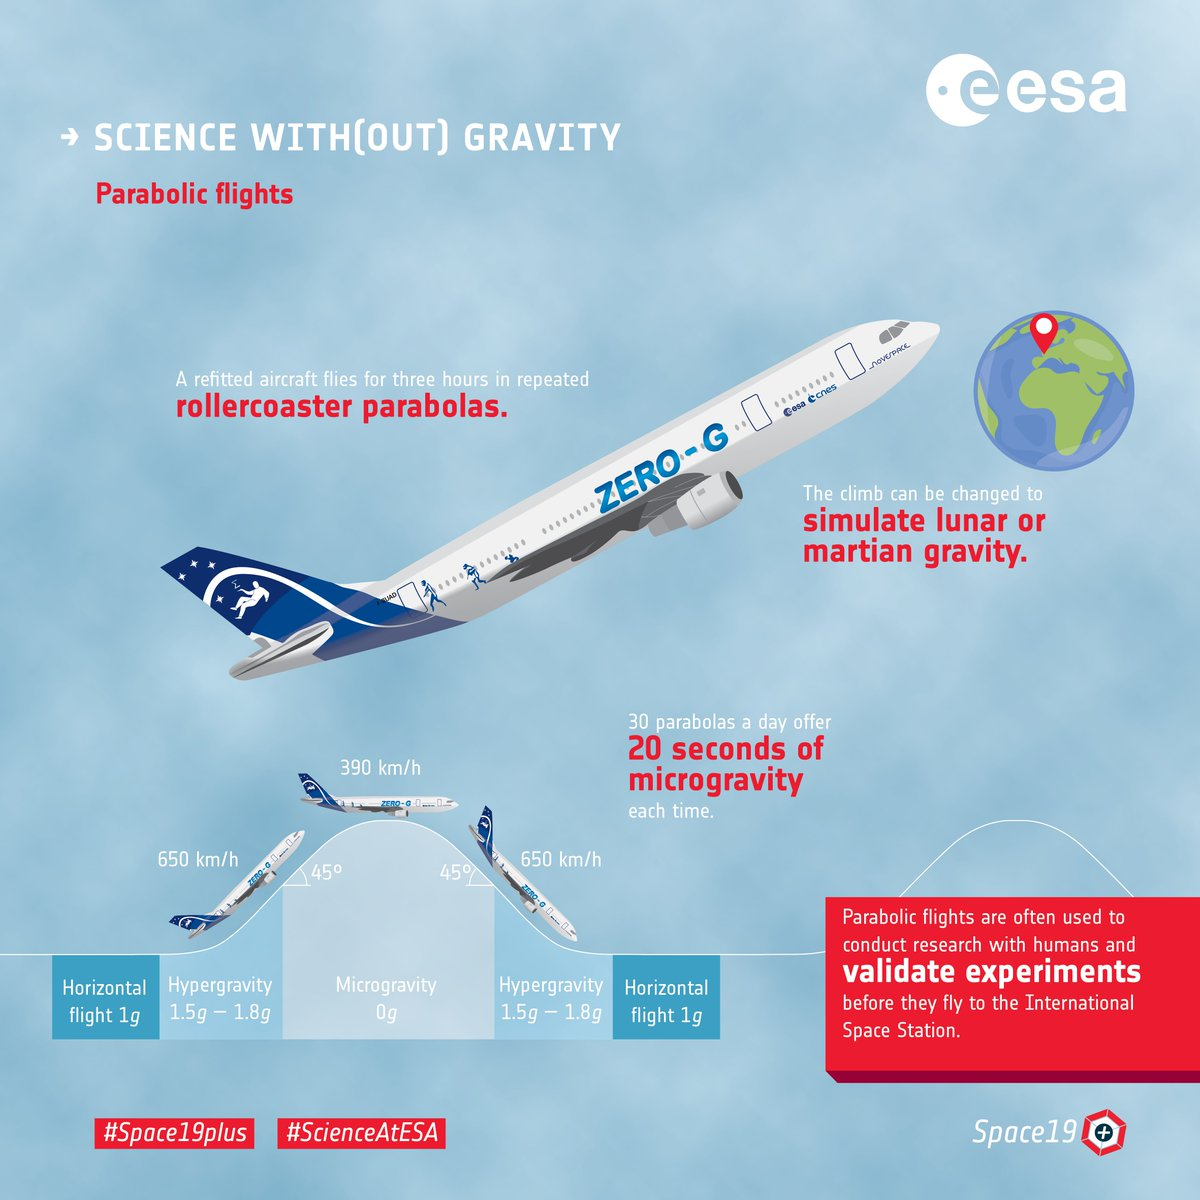 Science on a plane: this week @esas 71st parabolic flight campaign gets underway. Weightless research in the @AirZeroG ✈️esa.int/Our_Activities… #GravityRules